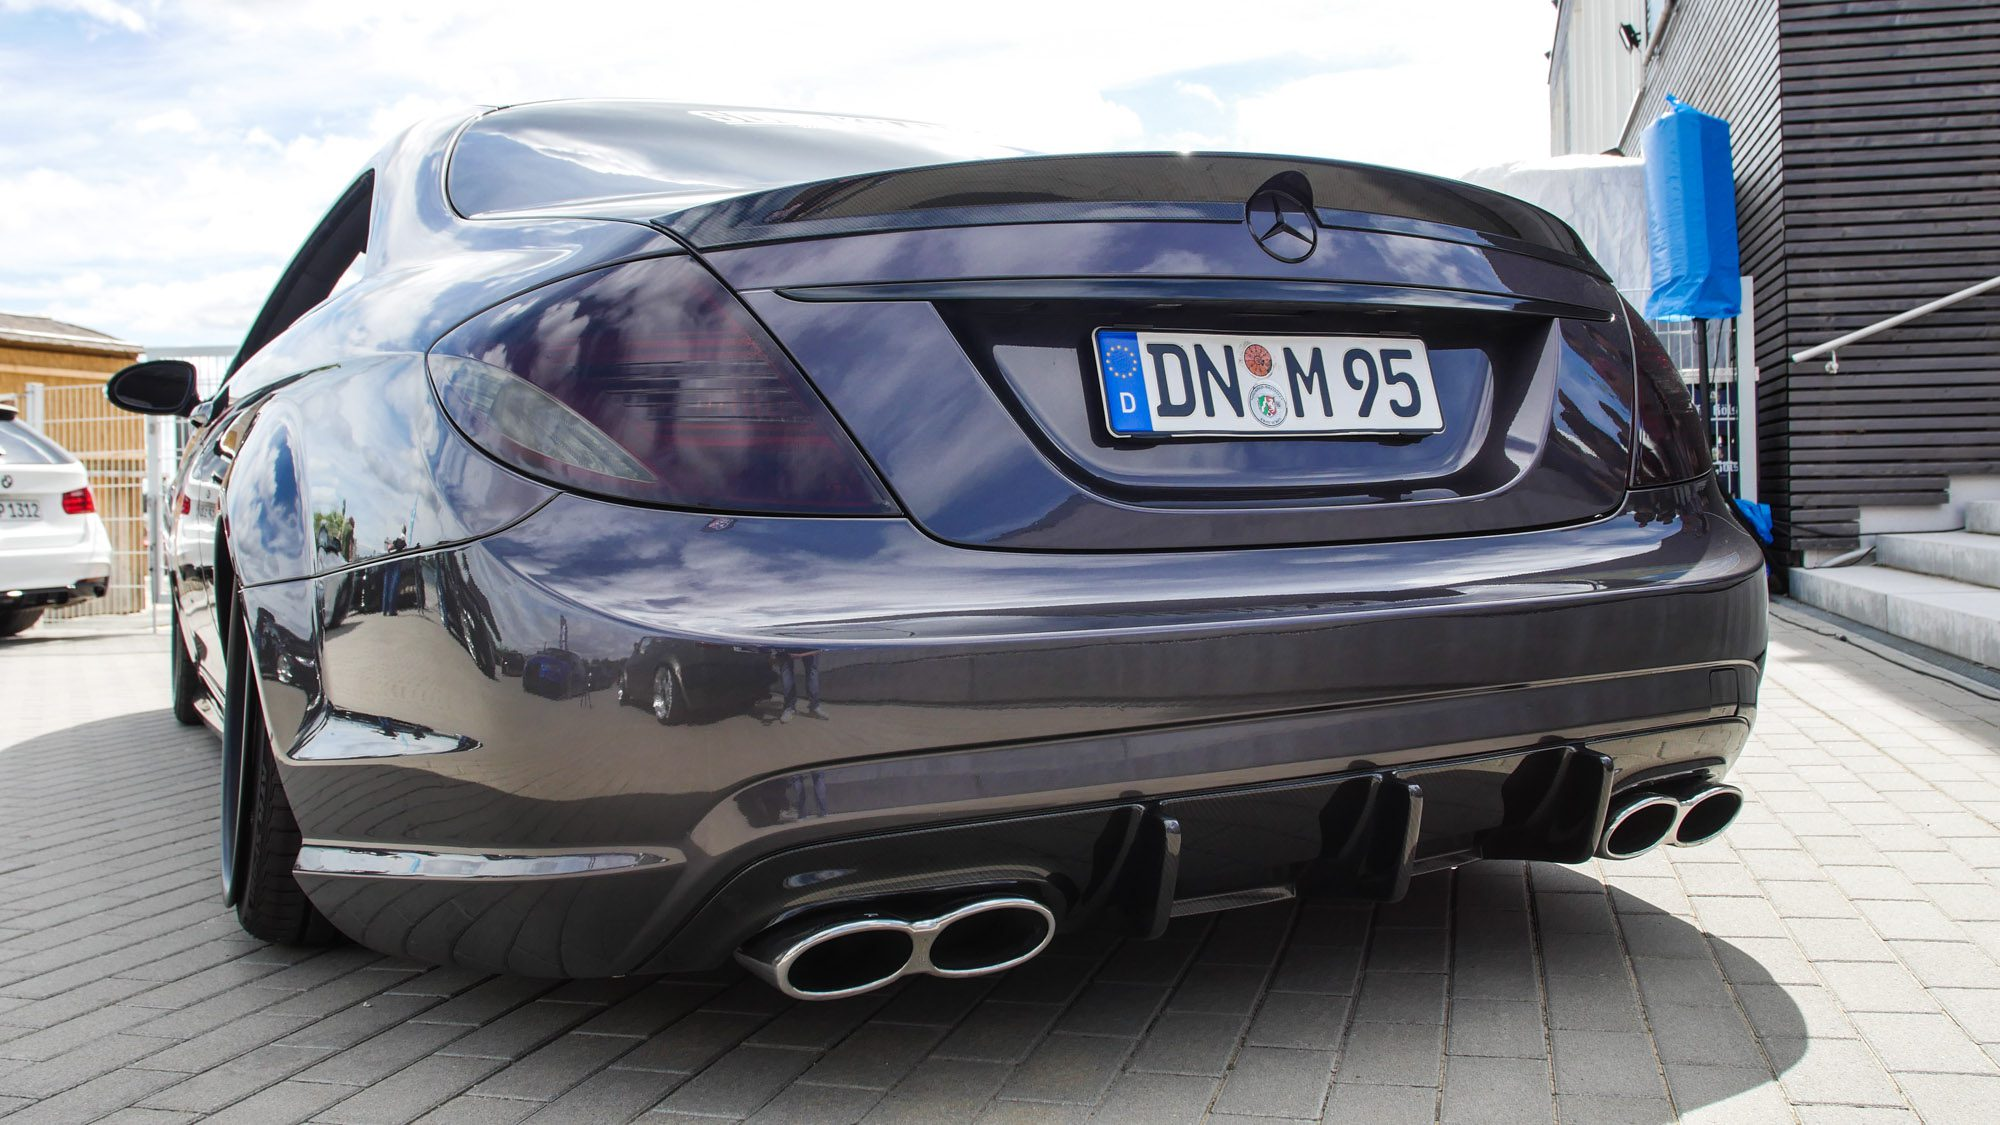 Fette Heckpartie des Mercedes CL500